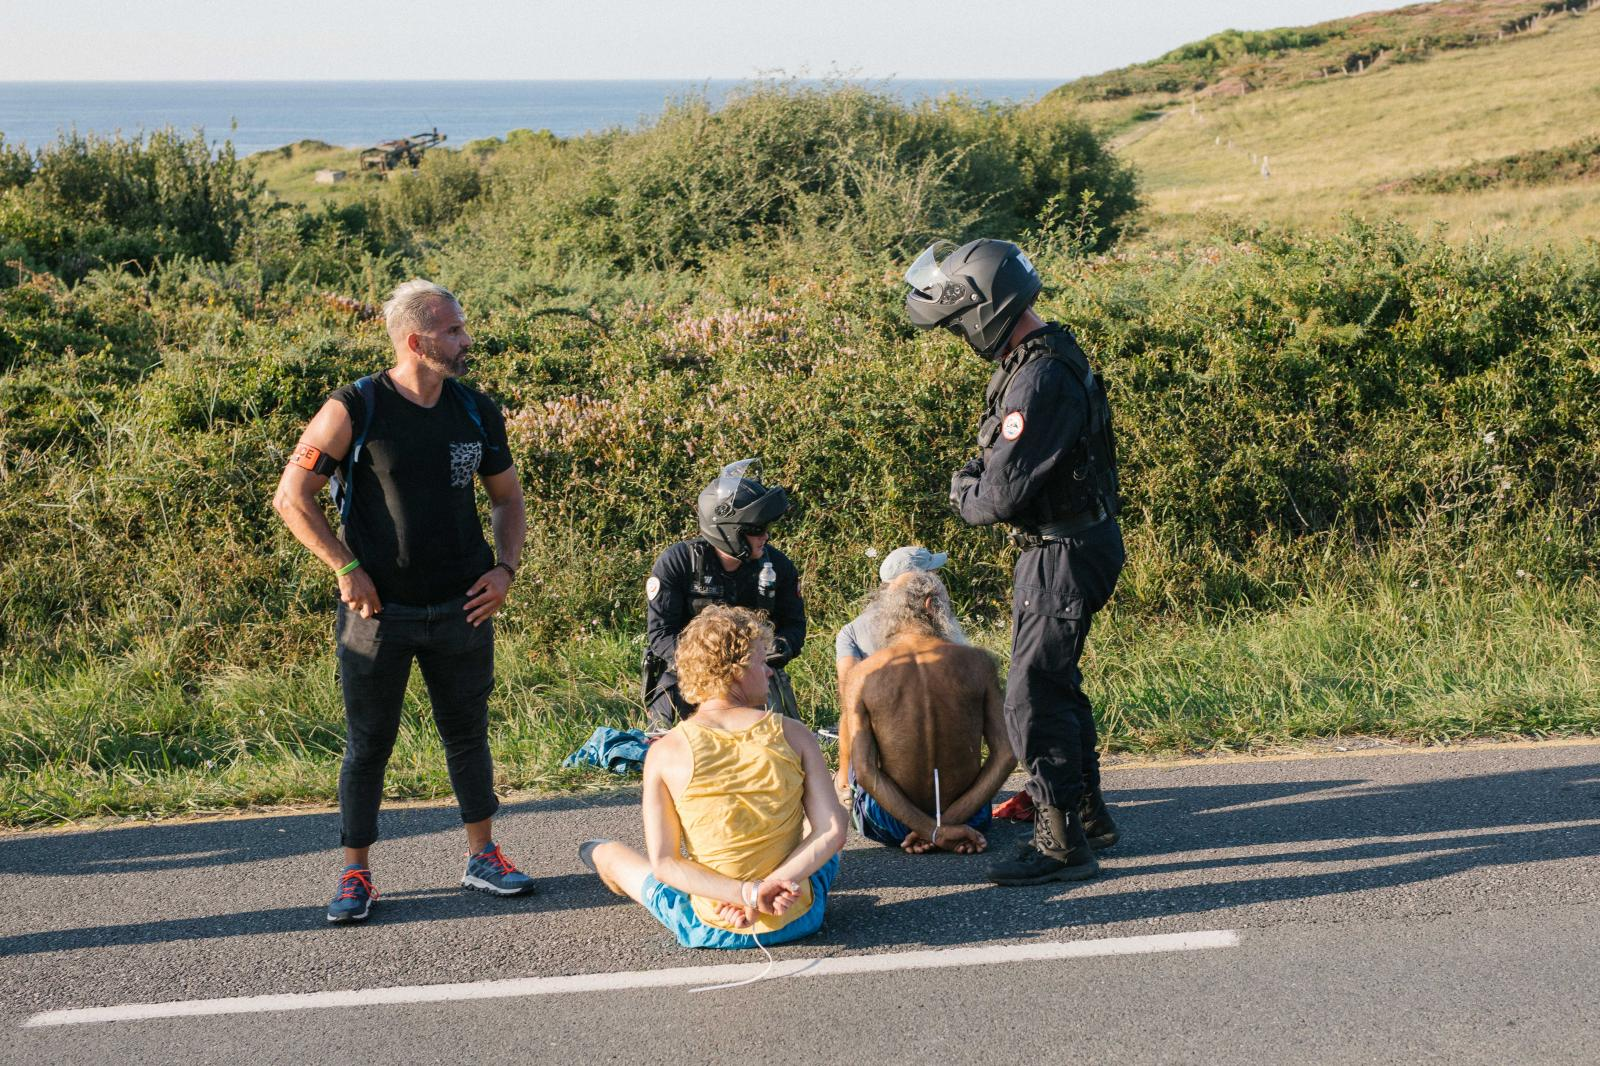 2019-08-23 - Arrests during spontaneous demonstration near protest camp.